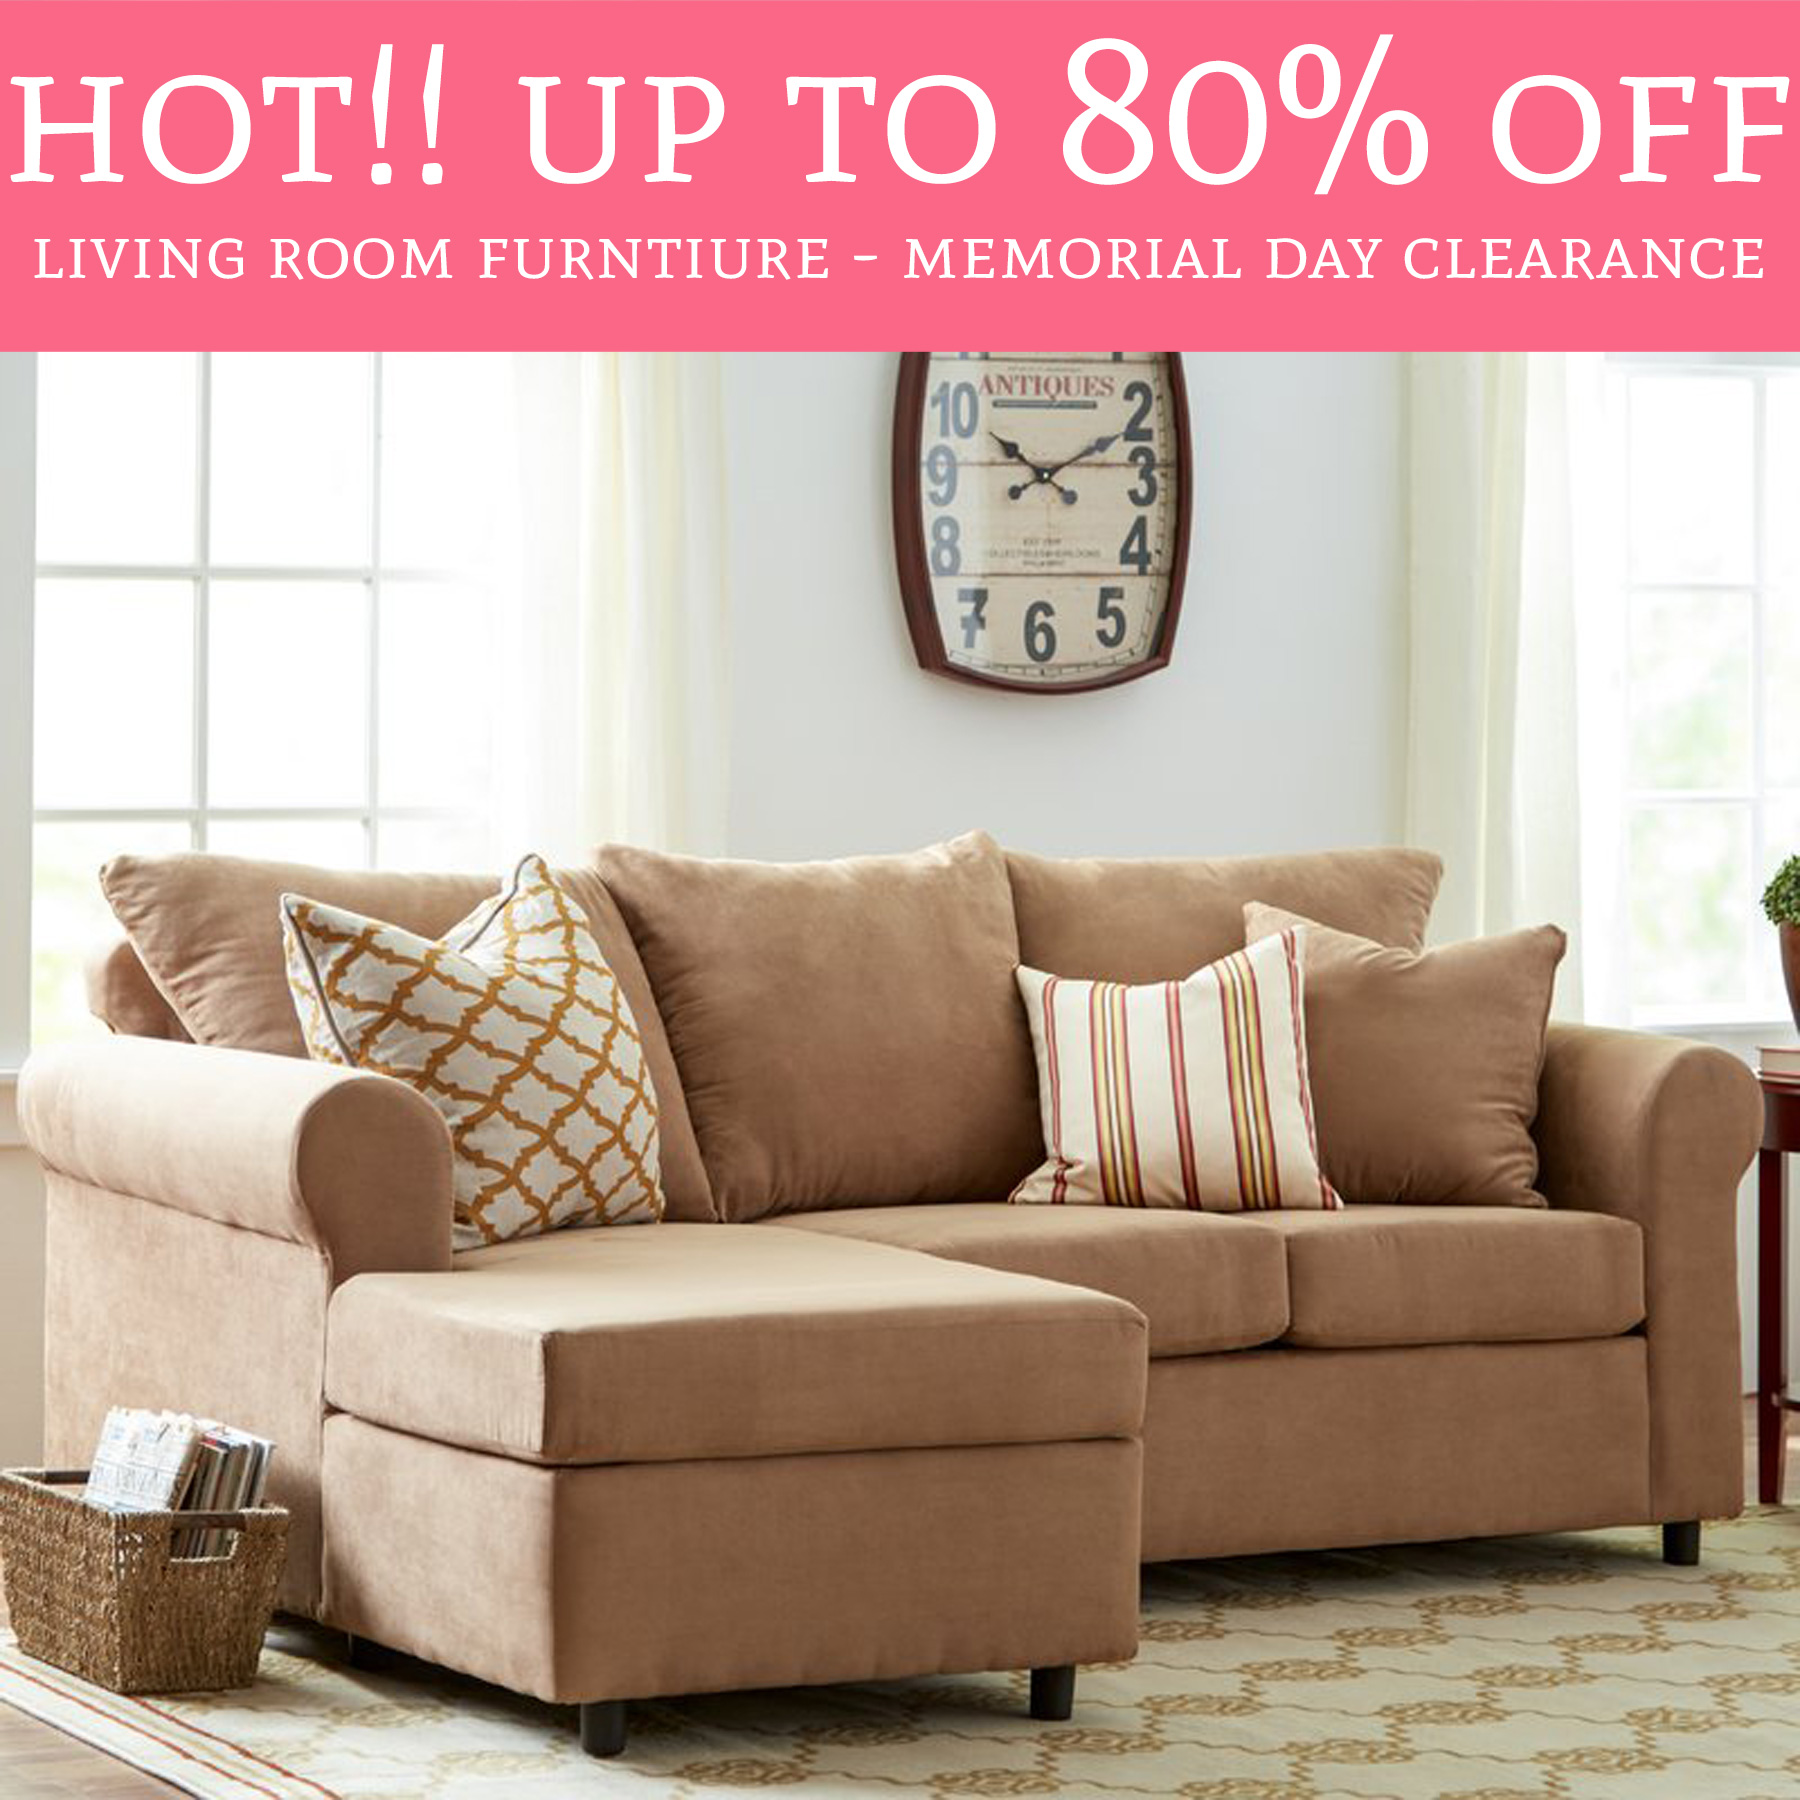 HOT! Up To 7% Off Living Room Furniture - Memorial Day Clearance